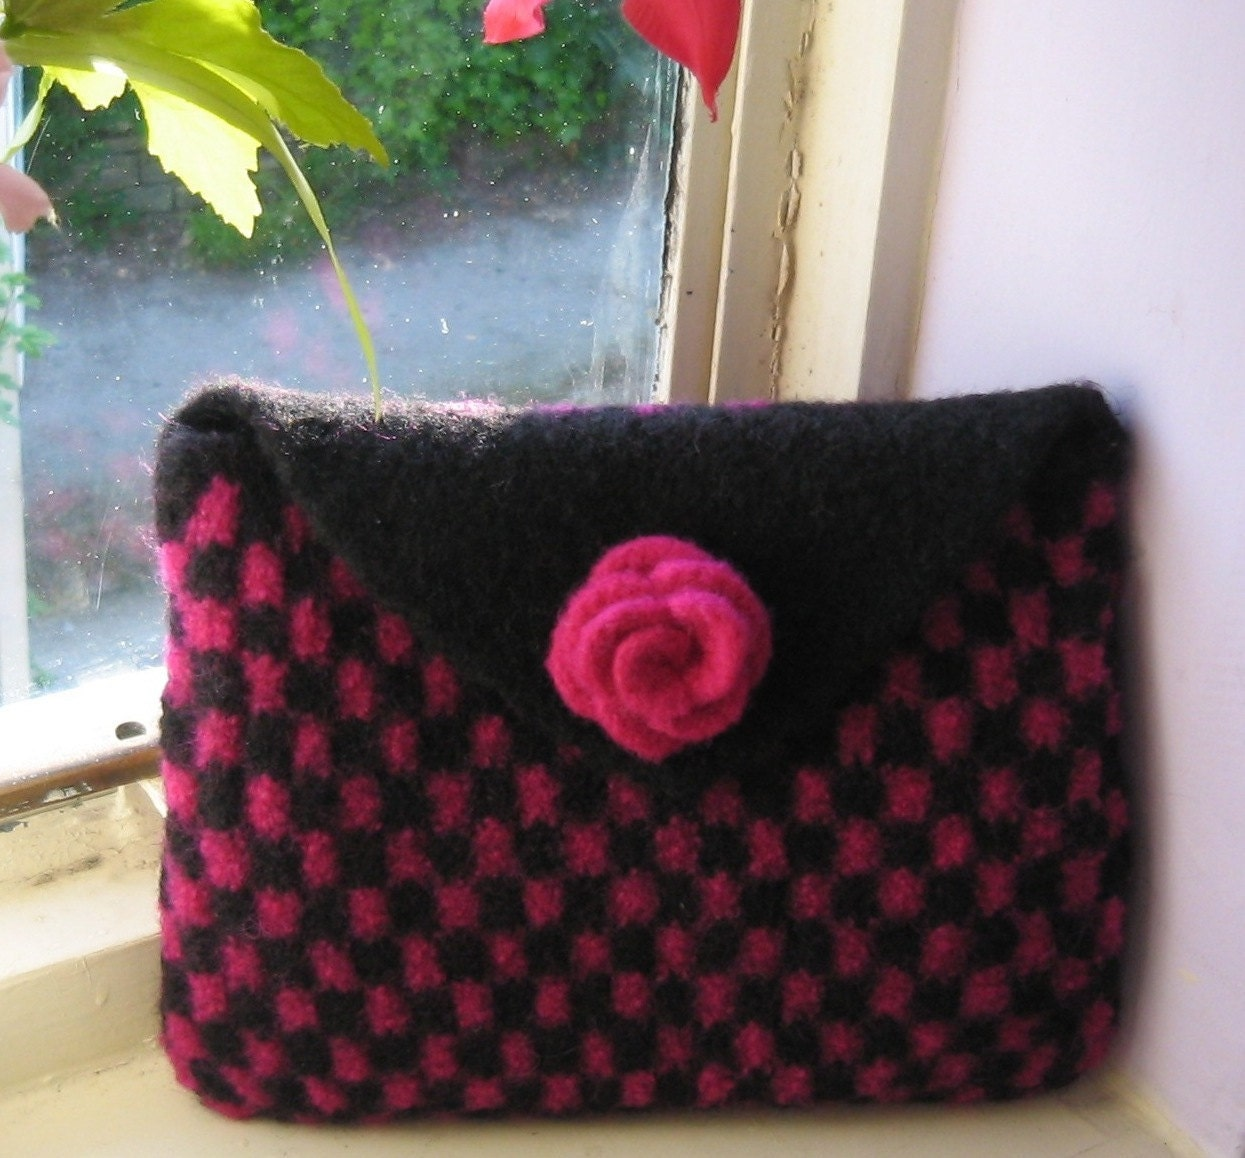 Knitted Clutch Bag Pattern : Cerise & Black Felted Clutch Bag PDF Knitting Pattern